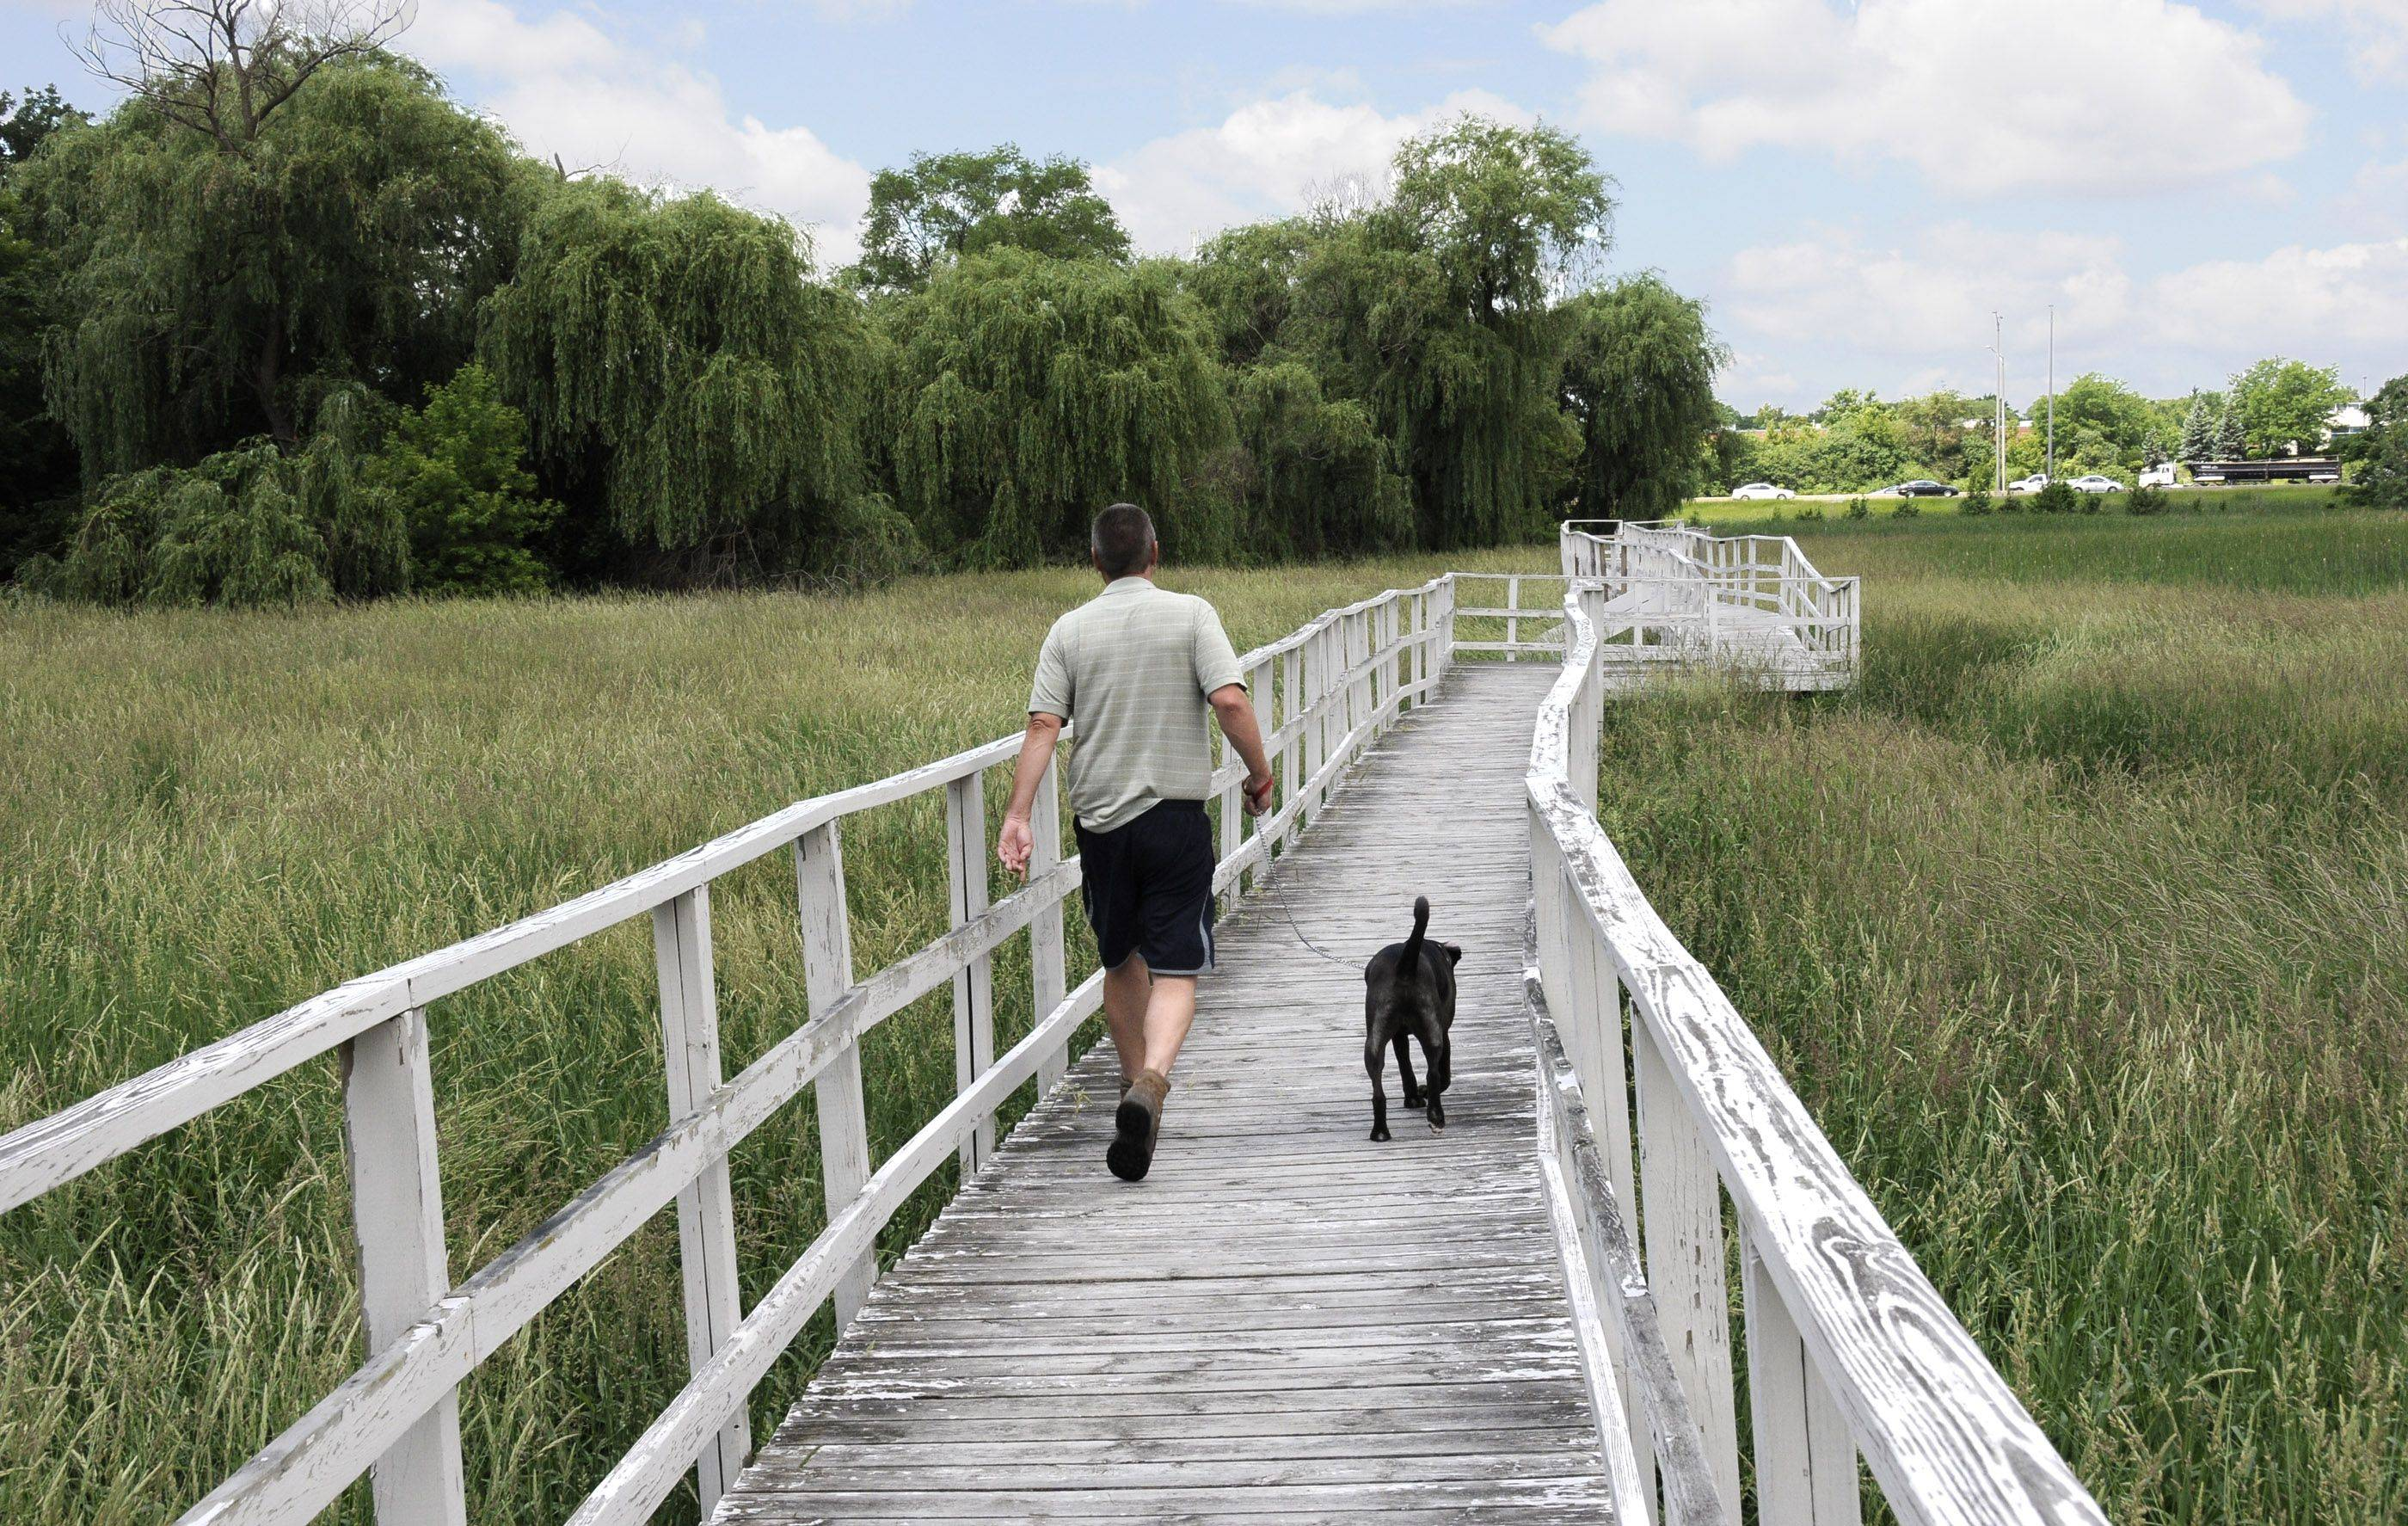 Itasca officials may use $108,000 in hotel tax revenues, which can only be used to promote tourism, to replace the Spring Brook Nature Center boardwalk. Visitors like Rob Kueking of Addison, and his dog Bentley, often stroll in the area.